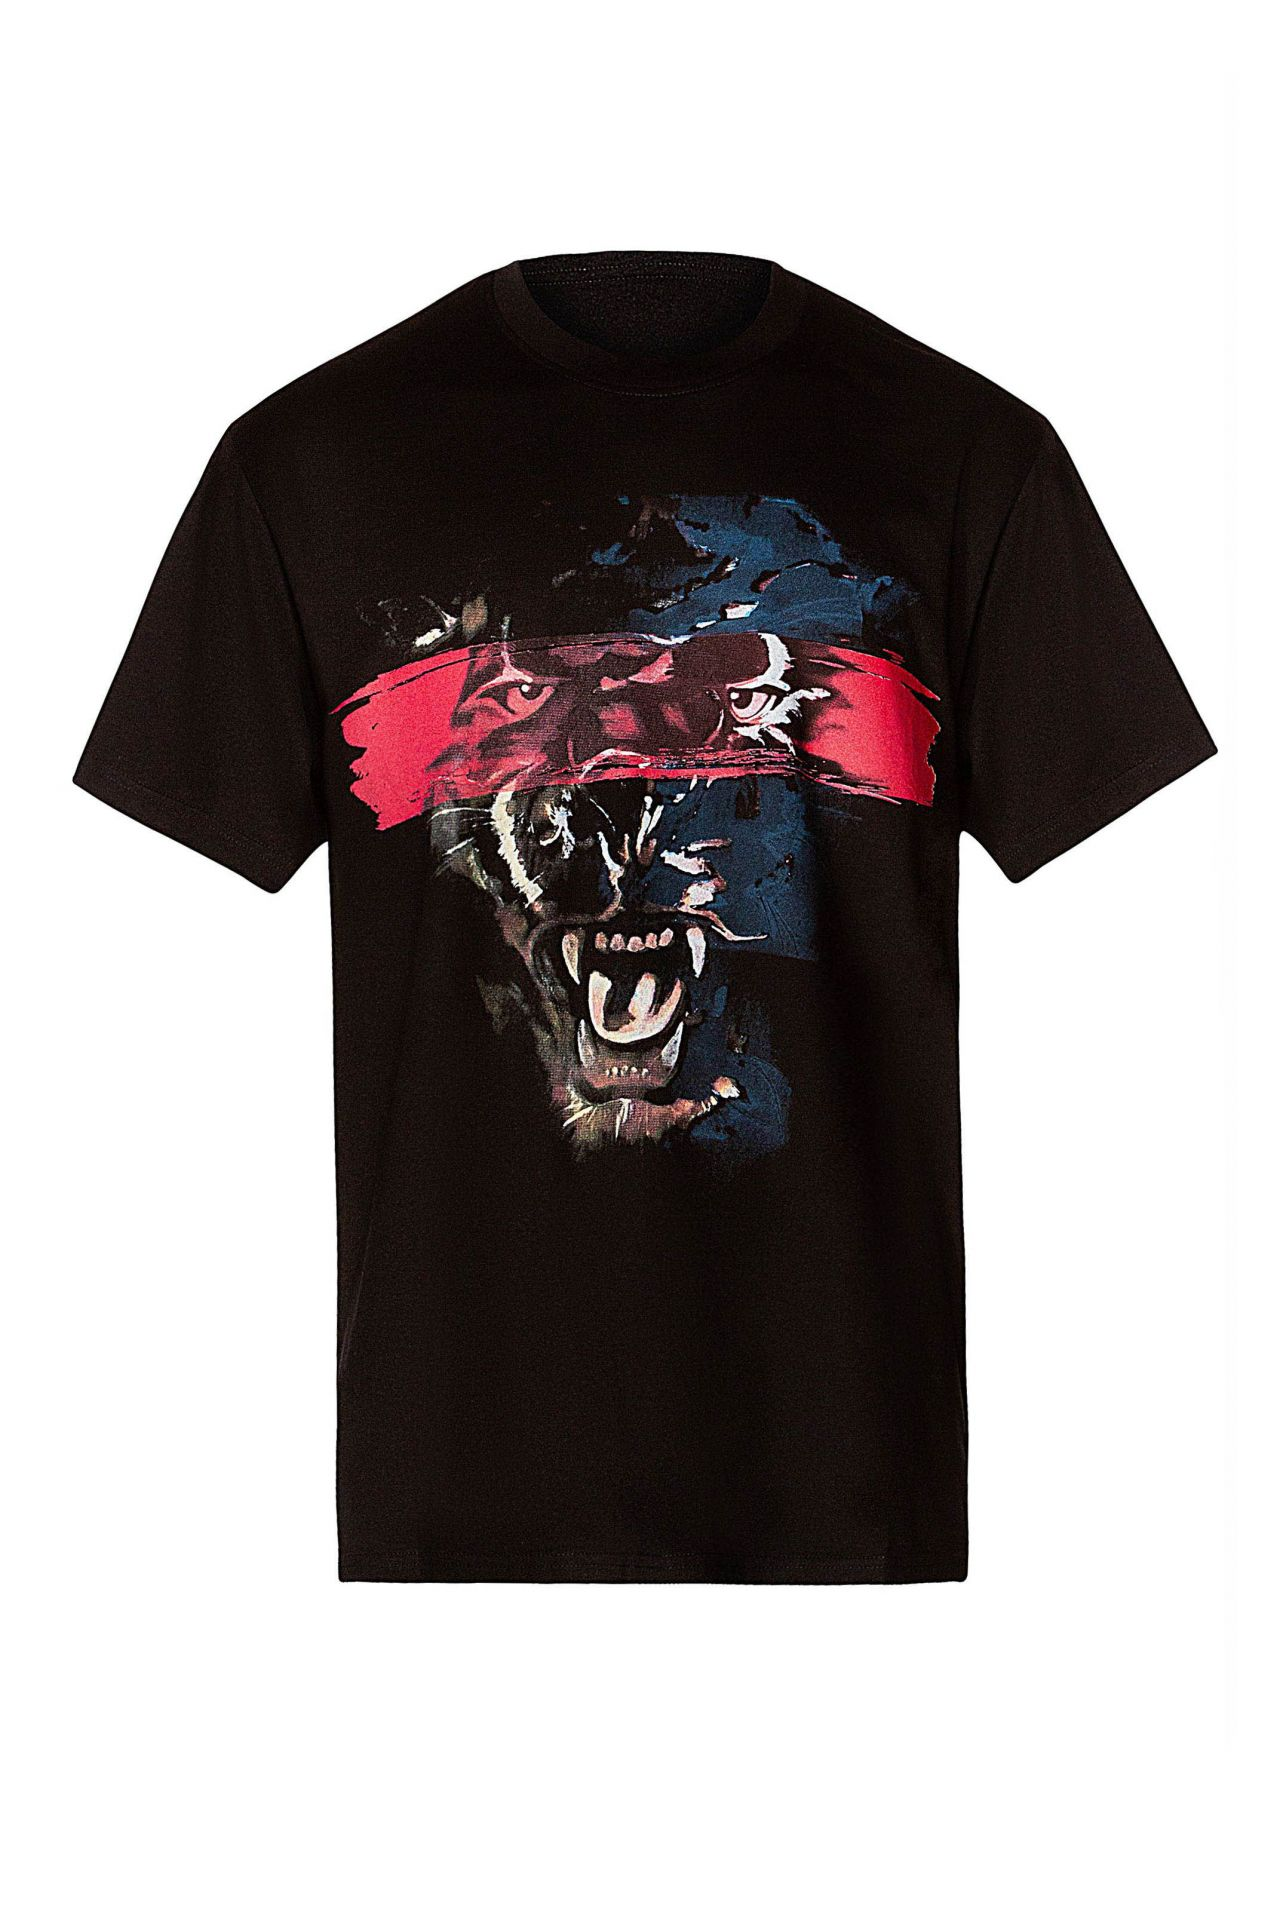 ROBIN'S RED LABEL PANTHER TEE IN BLACK